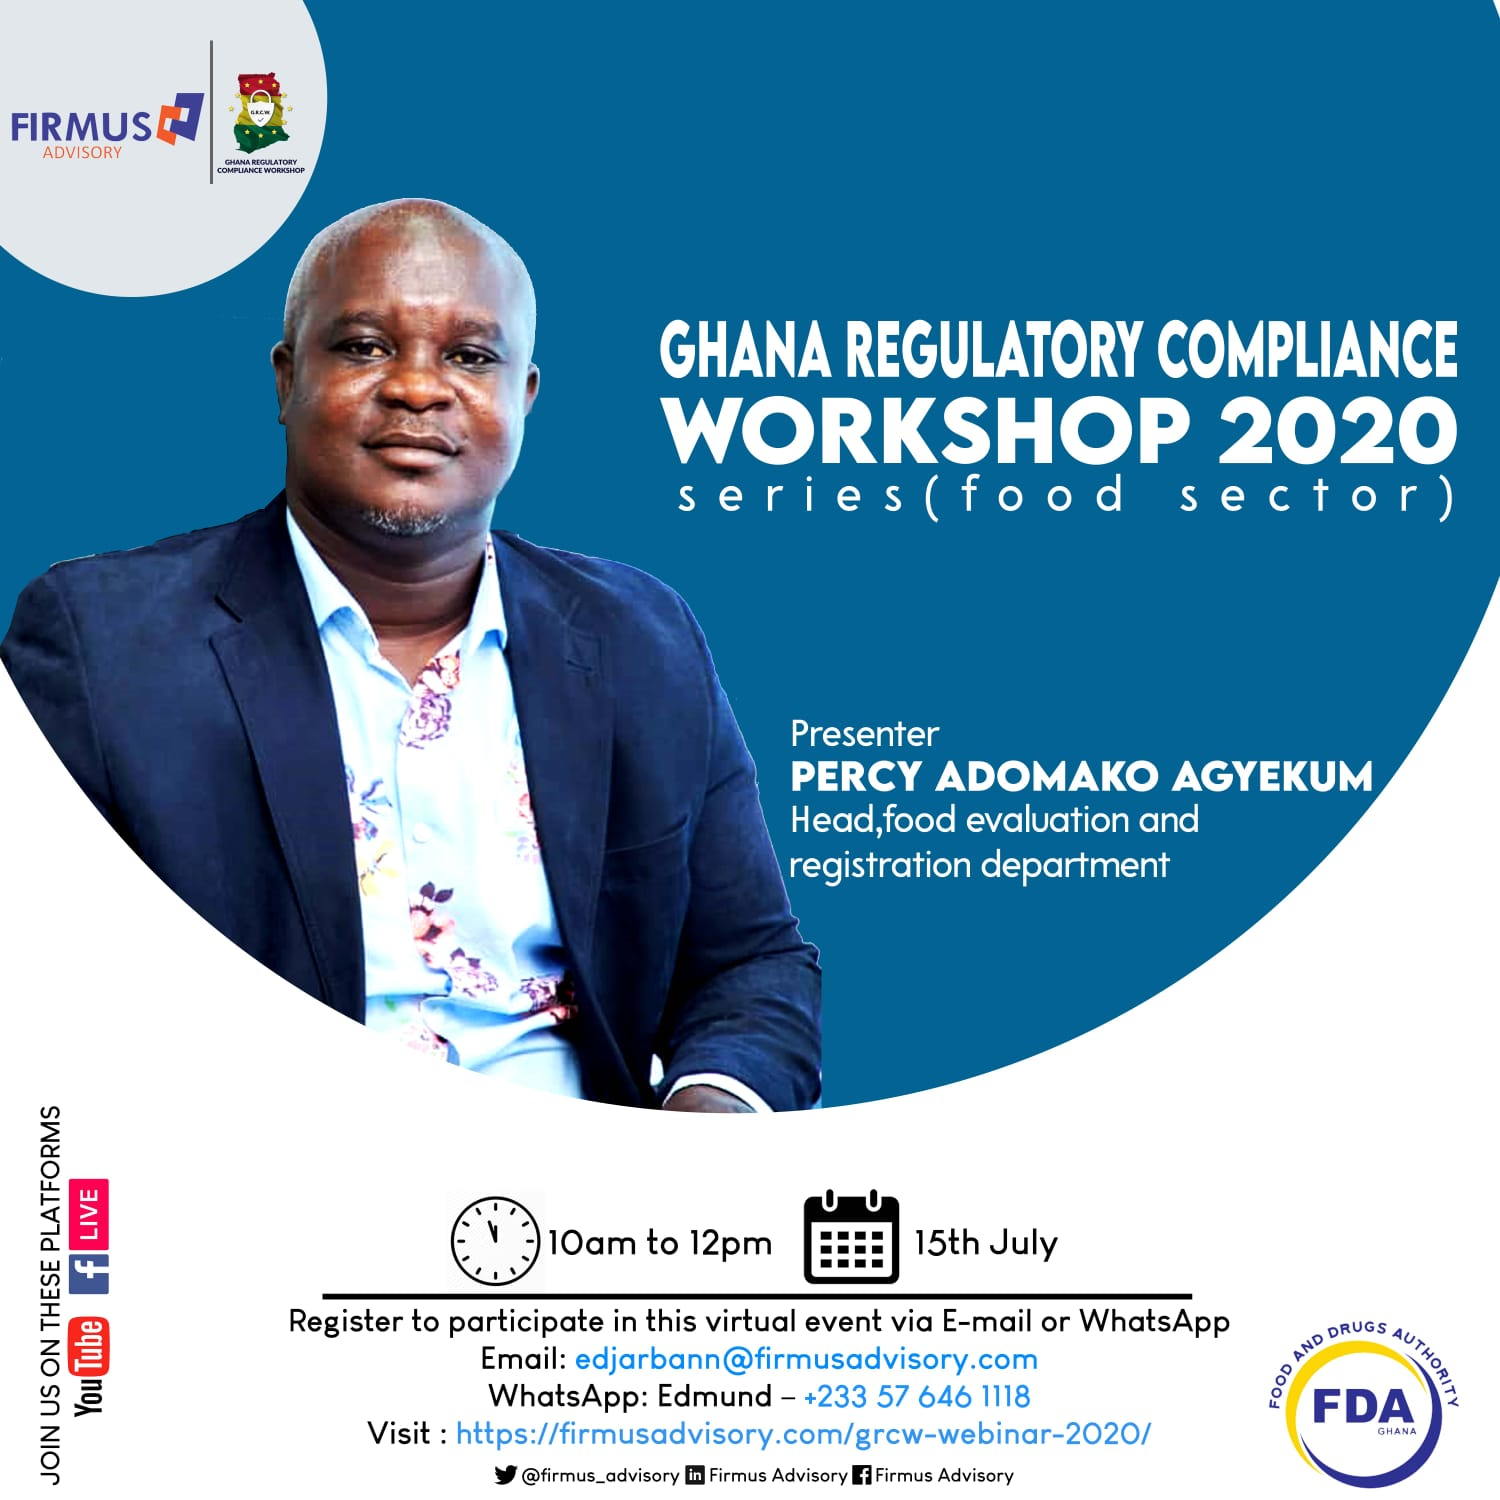 Ghana regulatory compliance workshop 2020